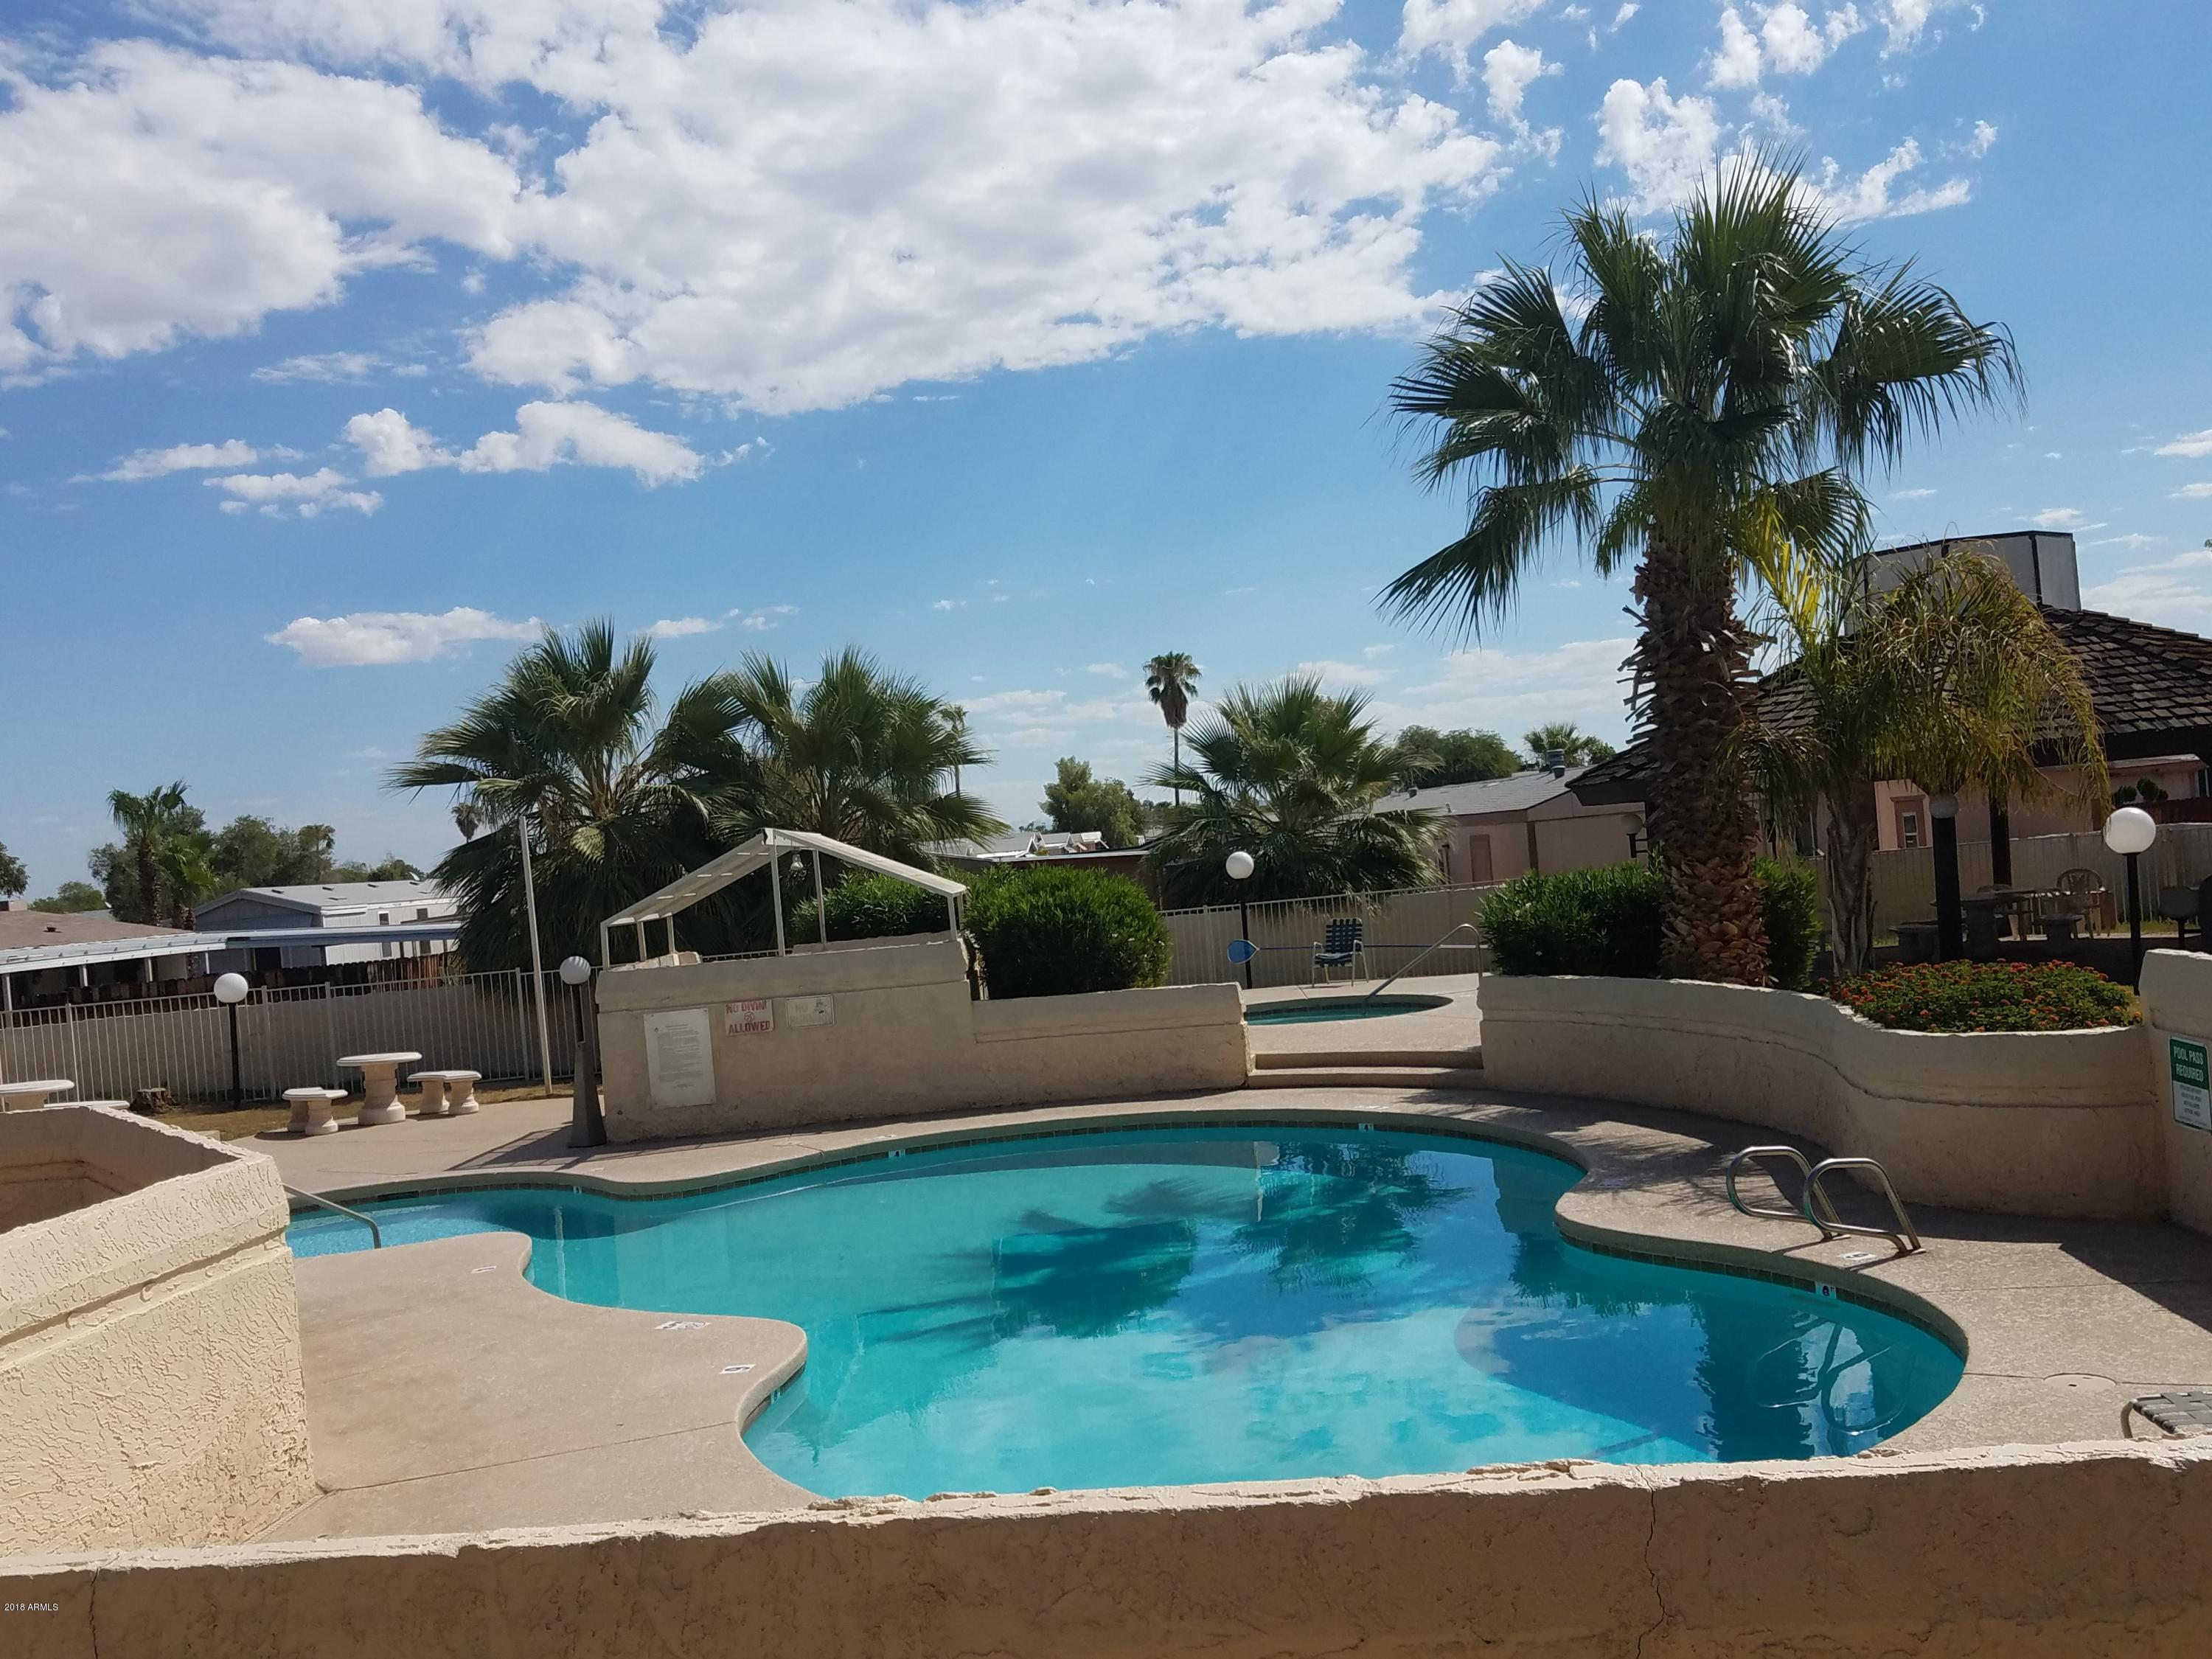 Photo of 10951 N 91ST Avenue #225, Peoria, AZ 85345